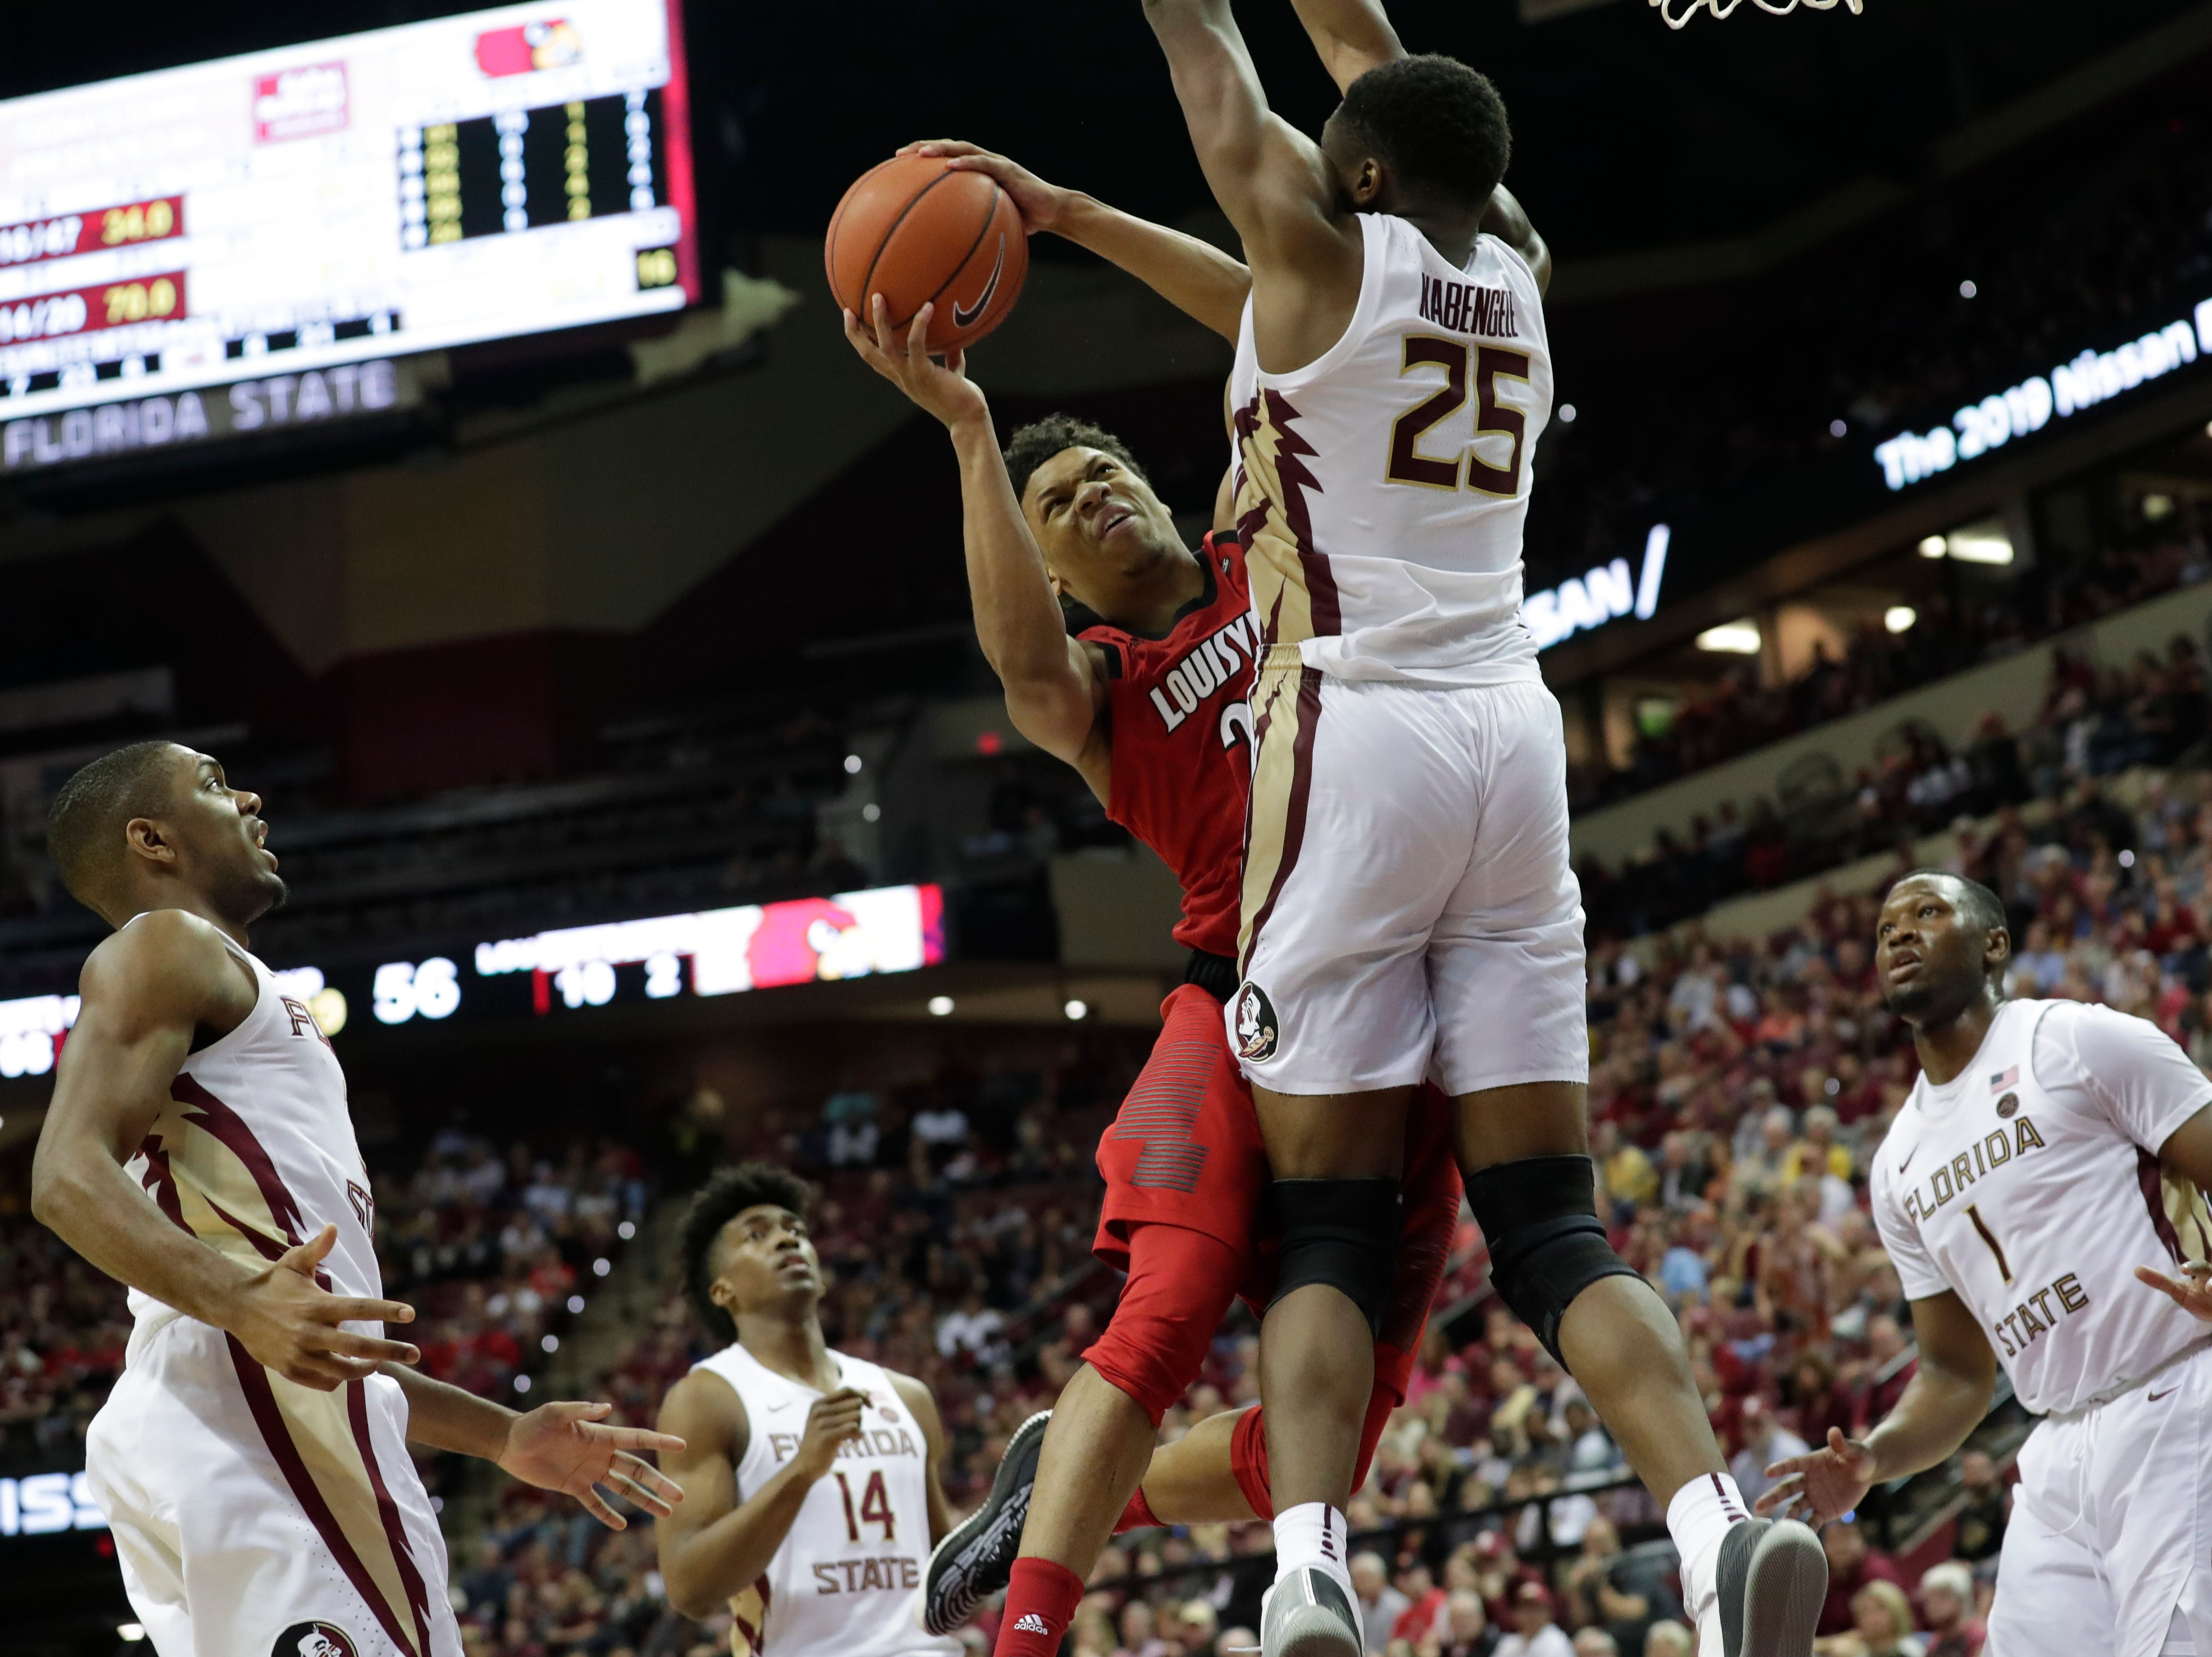 Louisville Cardinals center Steven Enoch (23) drives the ball to the hoop and tries shoot over Florida State Seminoles forward Mfiondu Kabengele (25). The Florida State Seminoles host the Louisville Cardinals at the Tucker Civic Center, Saturday Feb. 9, 2019.